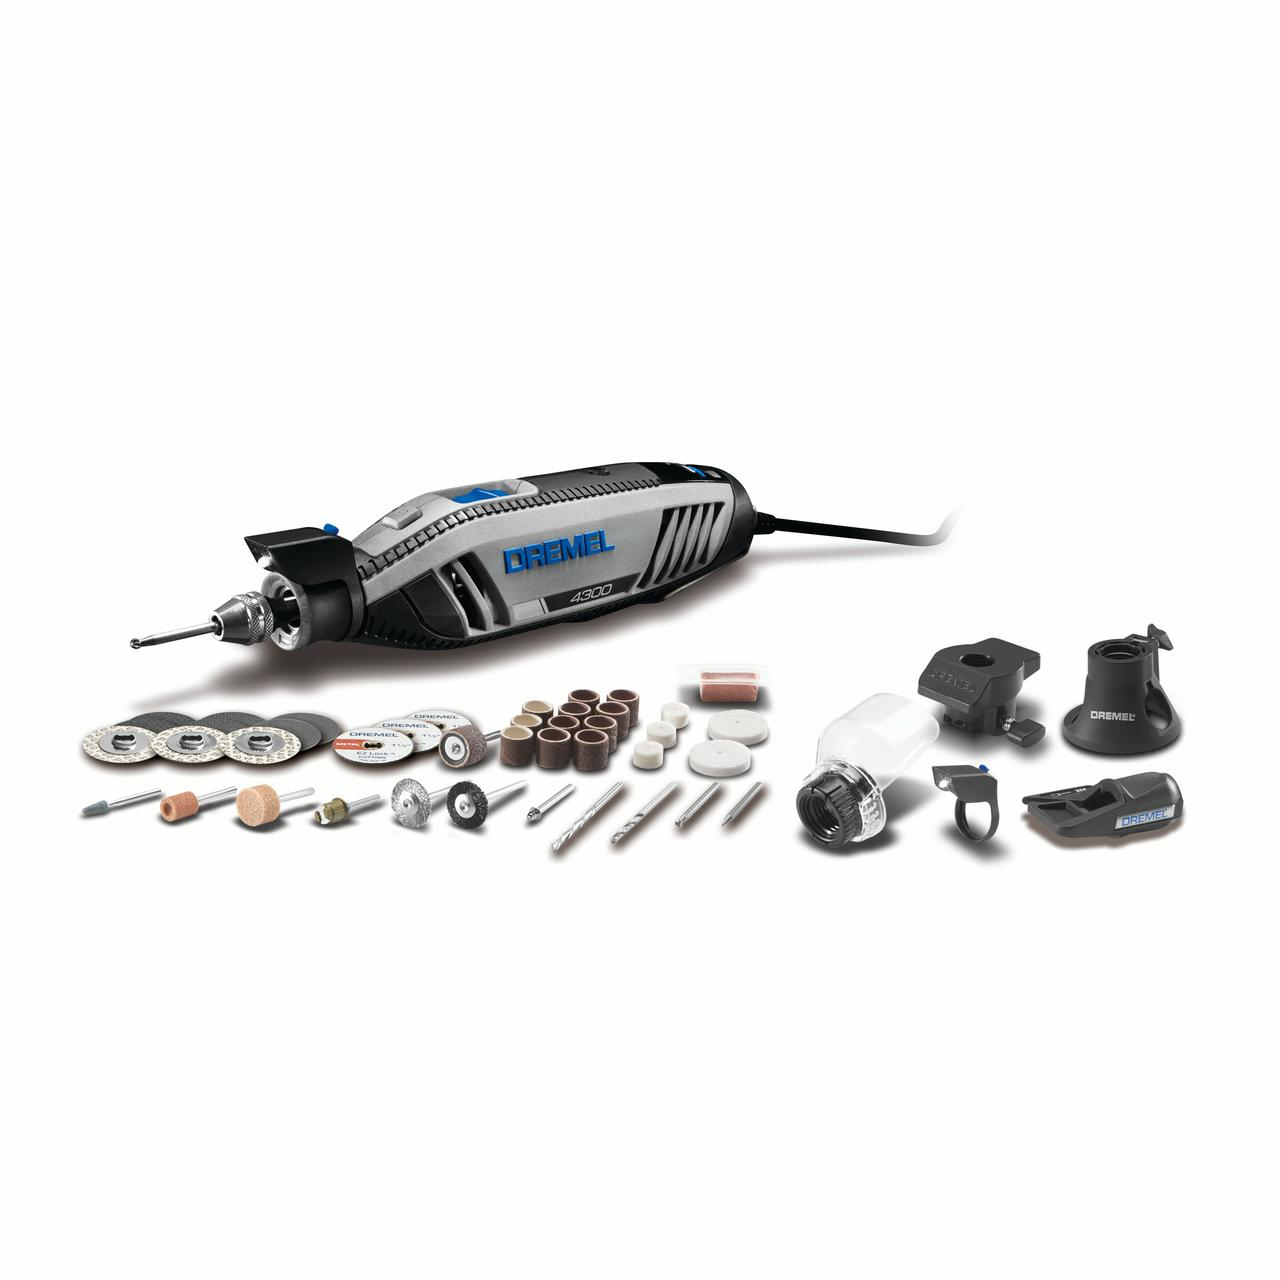 DREMEL 4300-5/40 Rotary Tool Kit w/5 attachments and 40 accessories